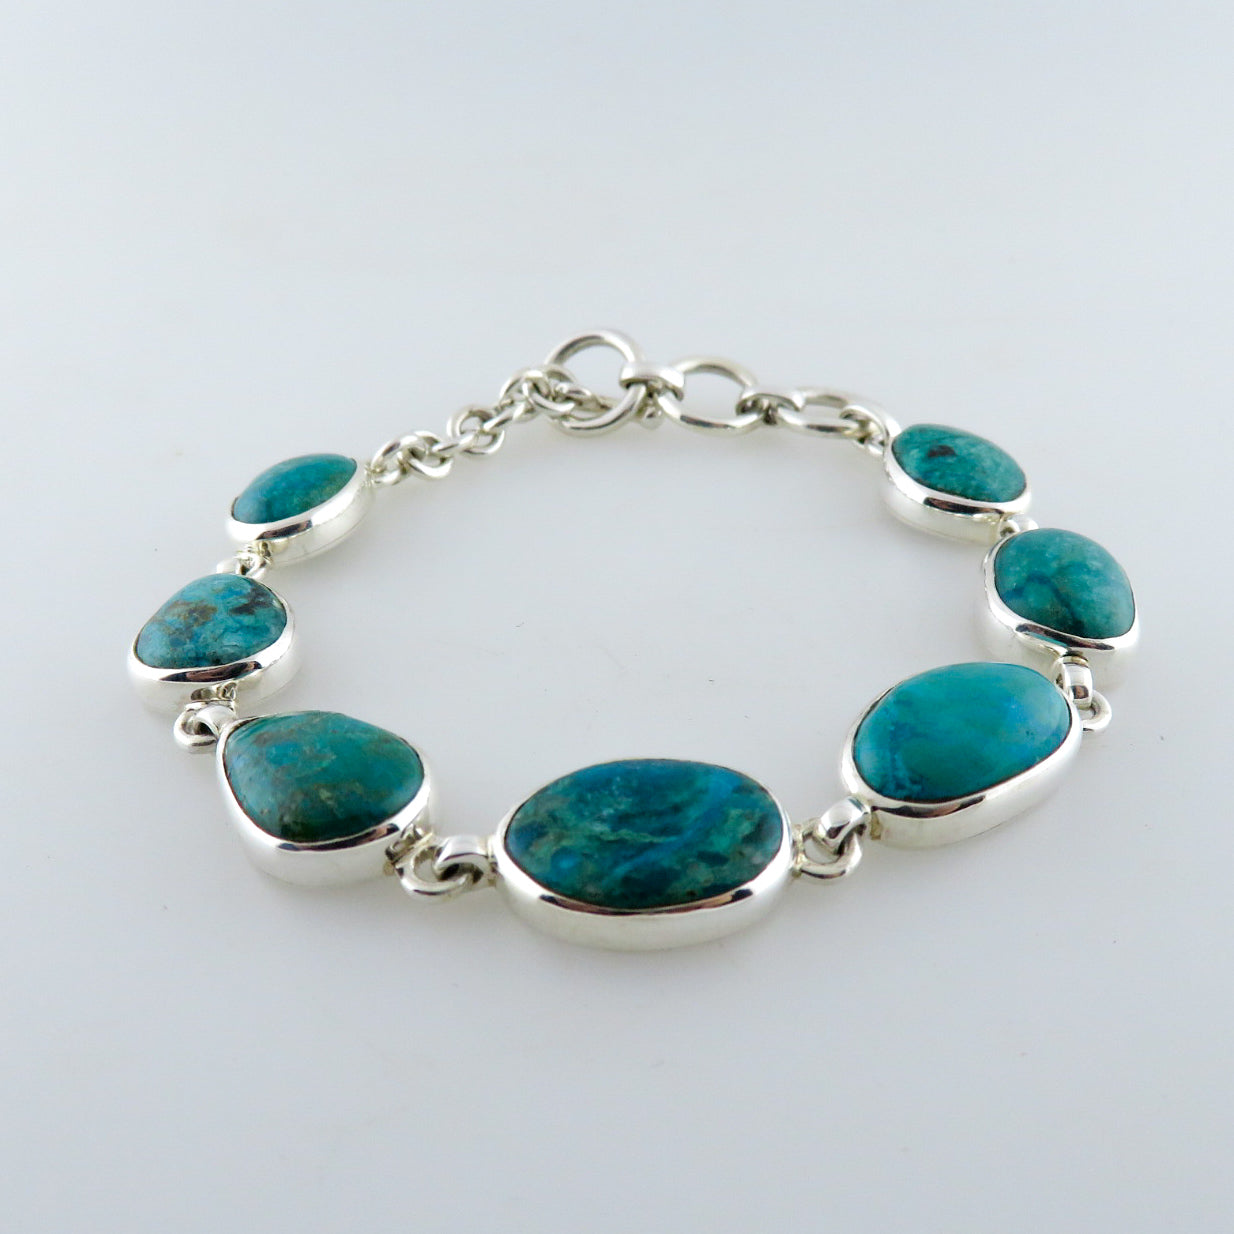 Chrysocolla Bracelet with Sterling Silver